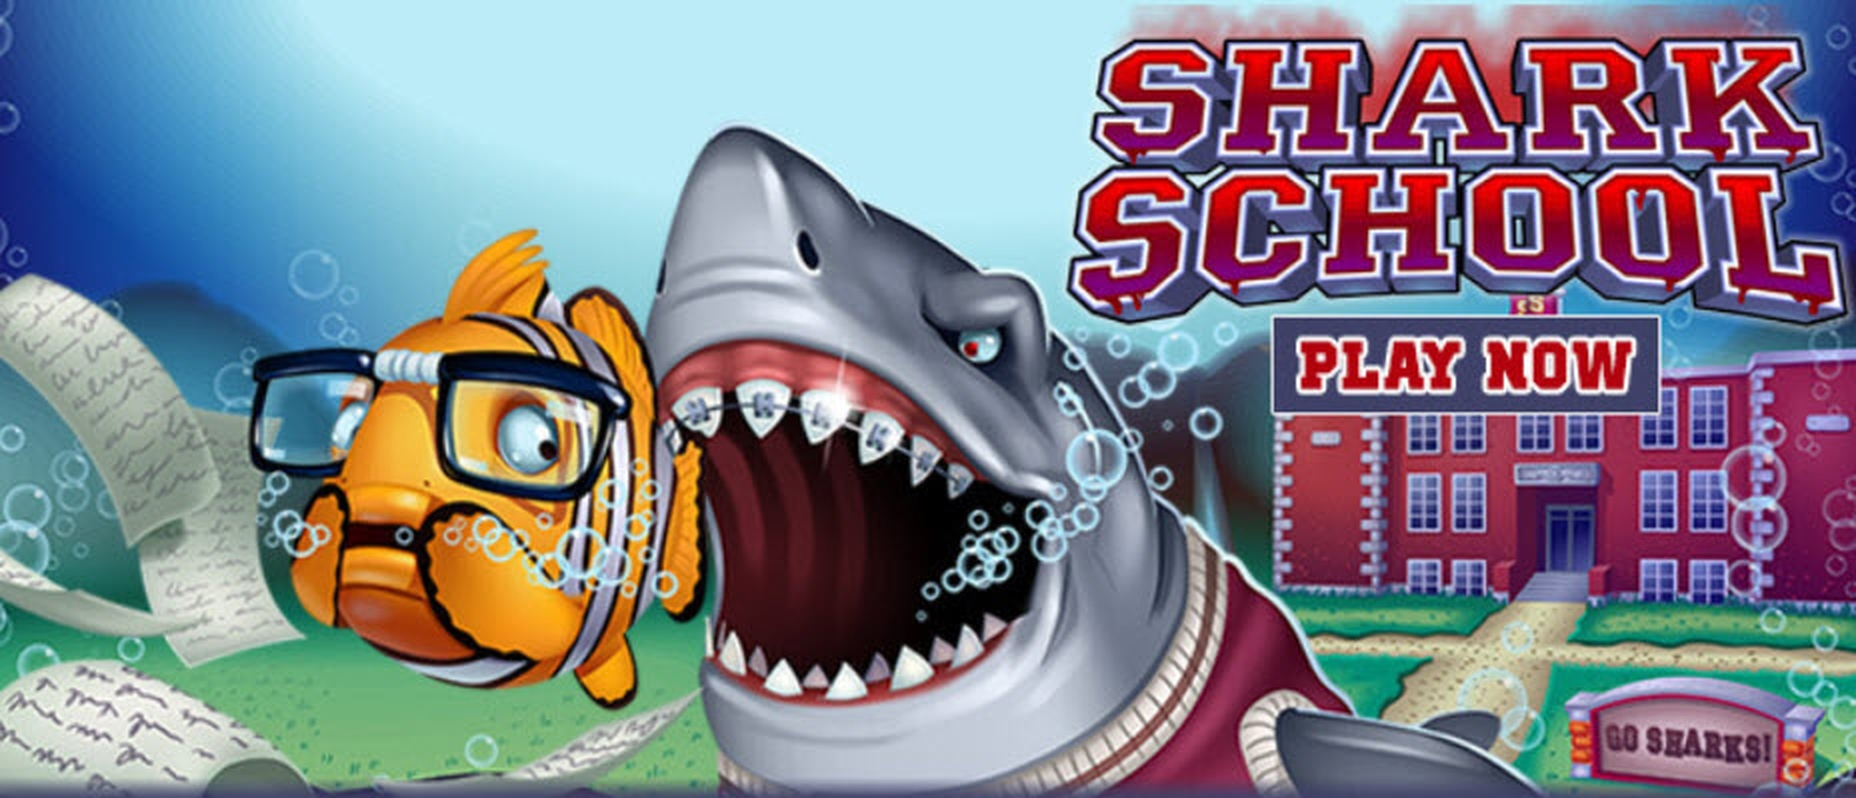 The Shark School Online Slot Demo Game by Real Time Gaming